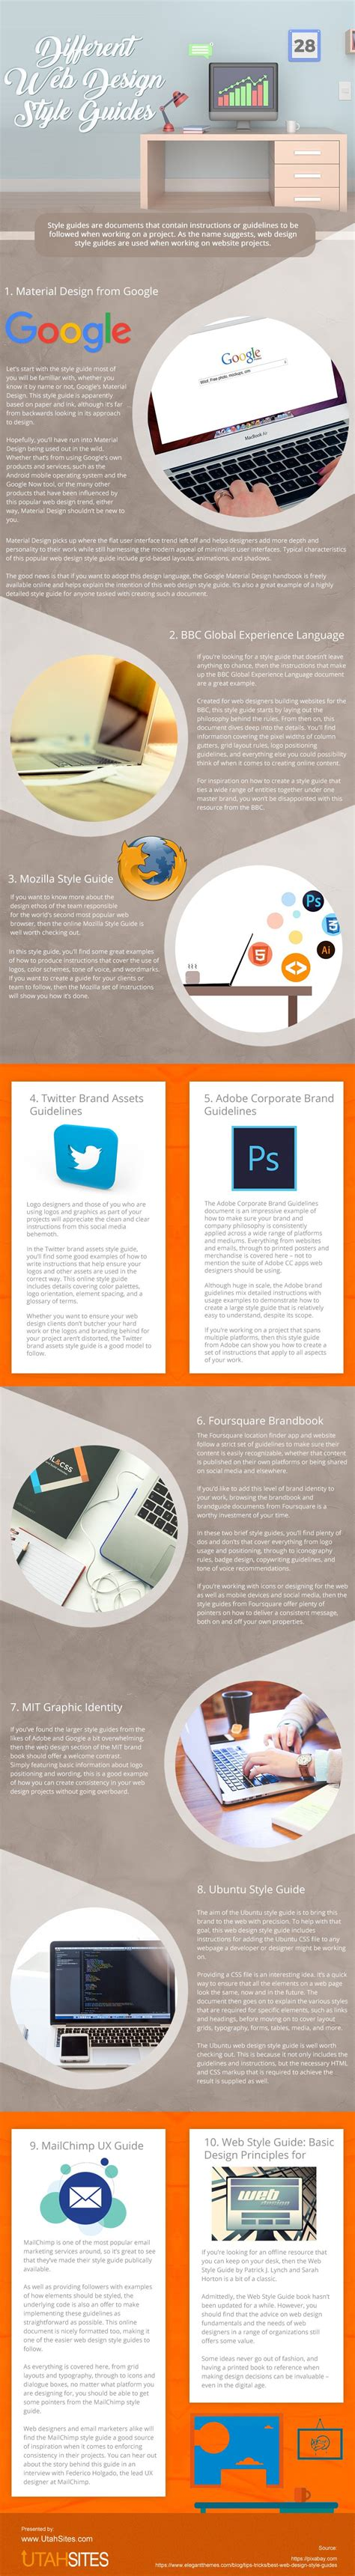 different layout in web design different web design style guides infographic